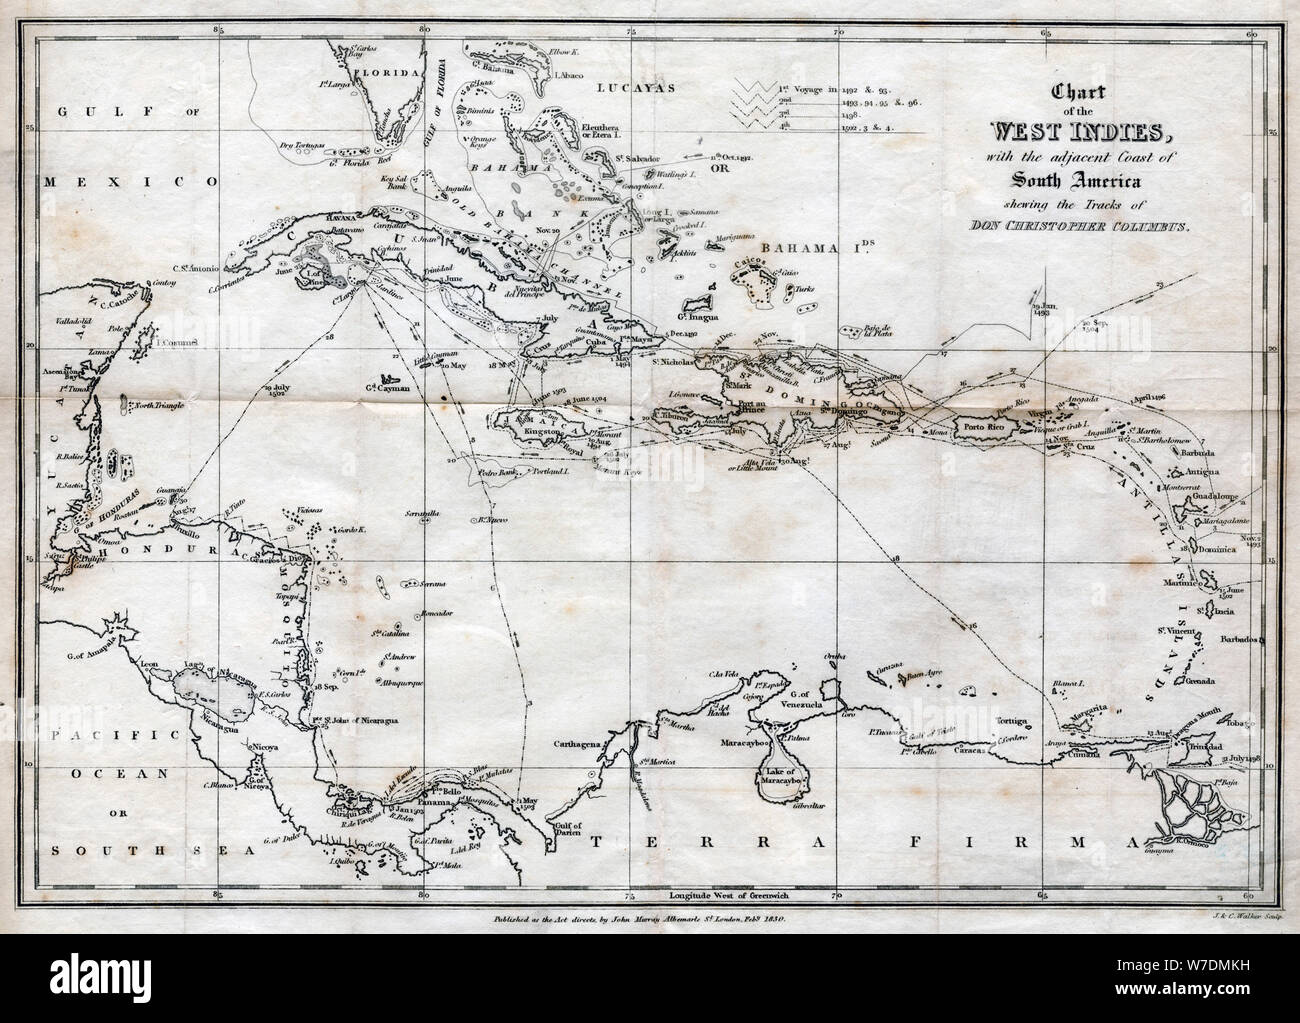 Chart of the West Indies, with the adjacent Coast of South America, 1830. Artist: J&C Walker Stock Photo